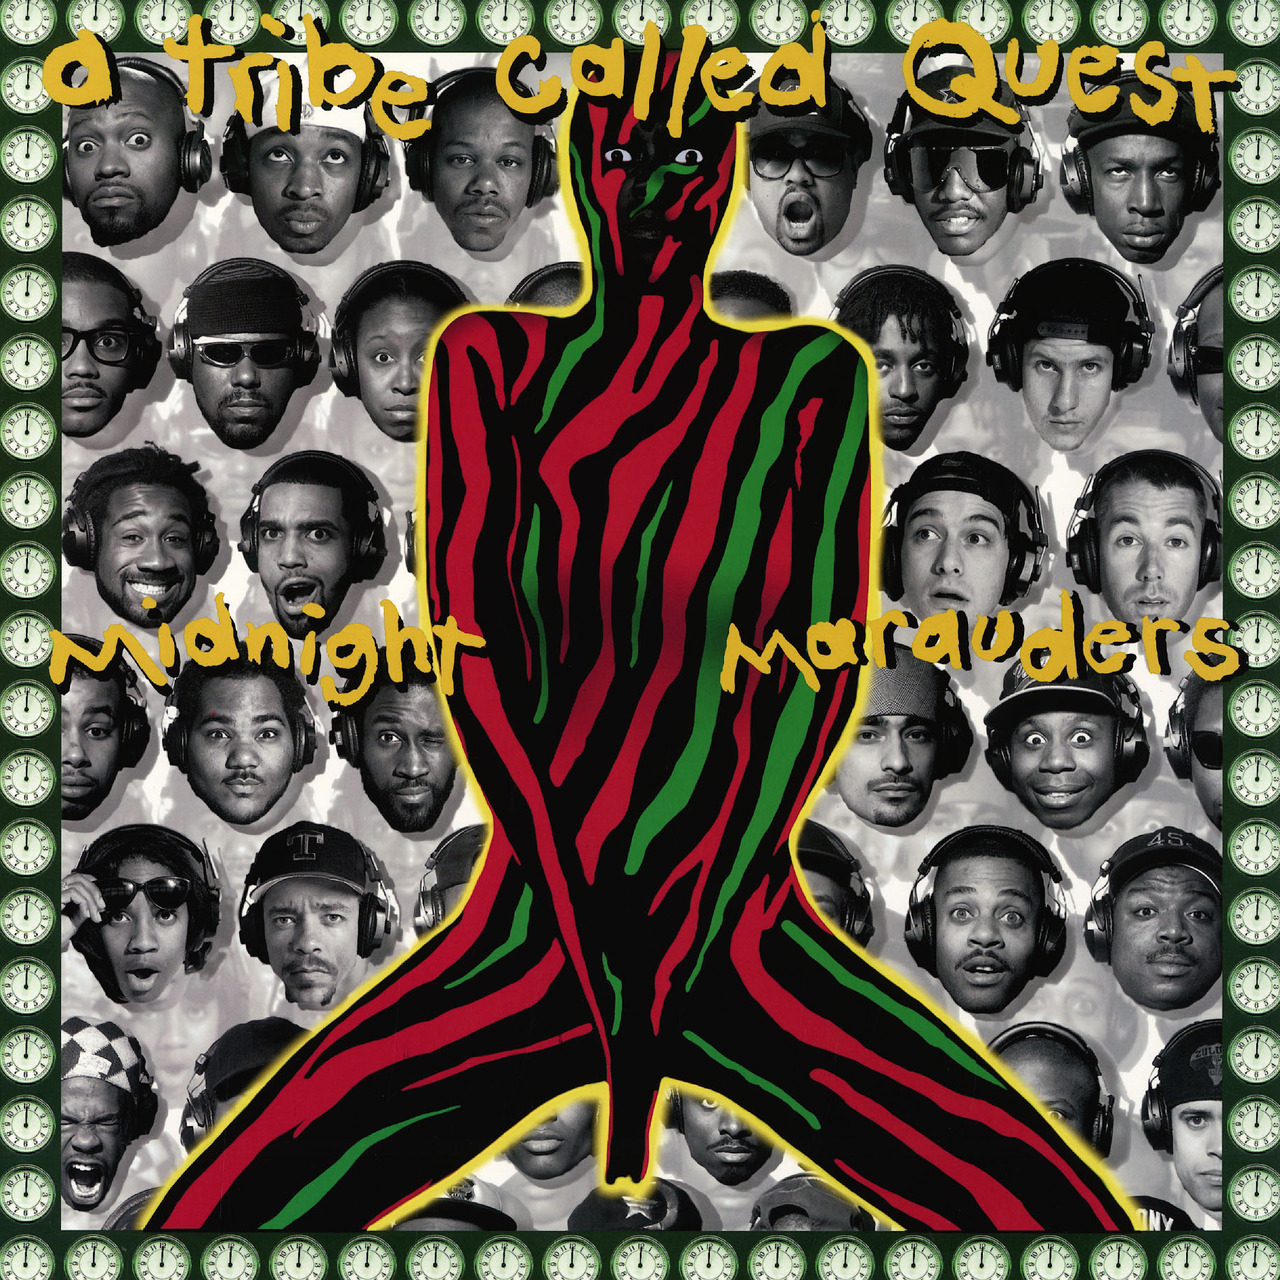 a tribe called quest music style